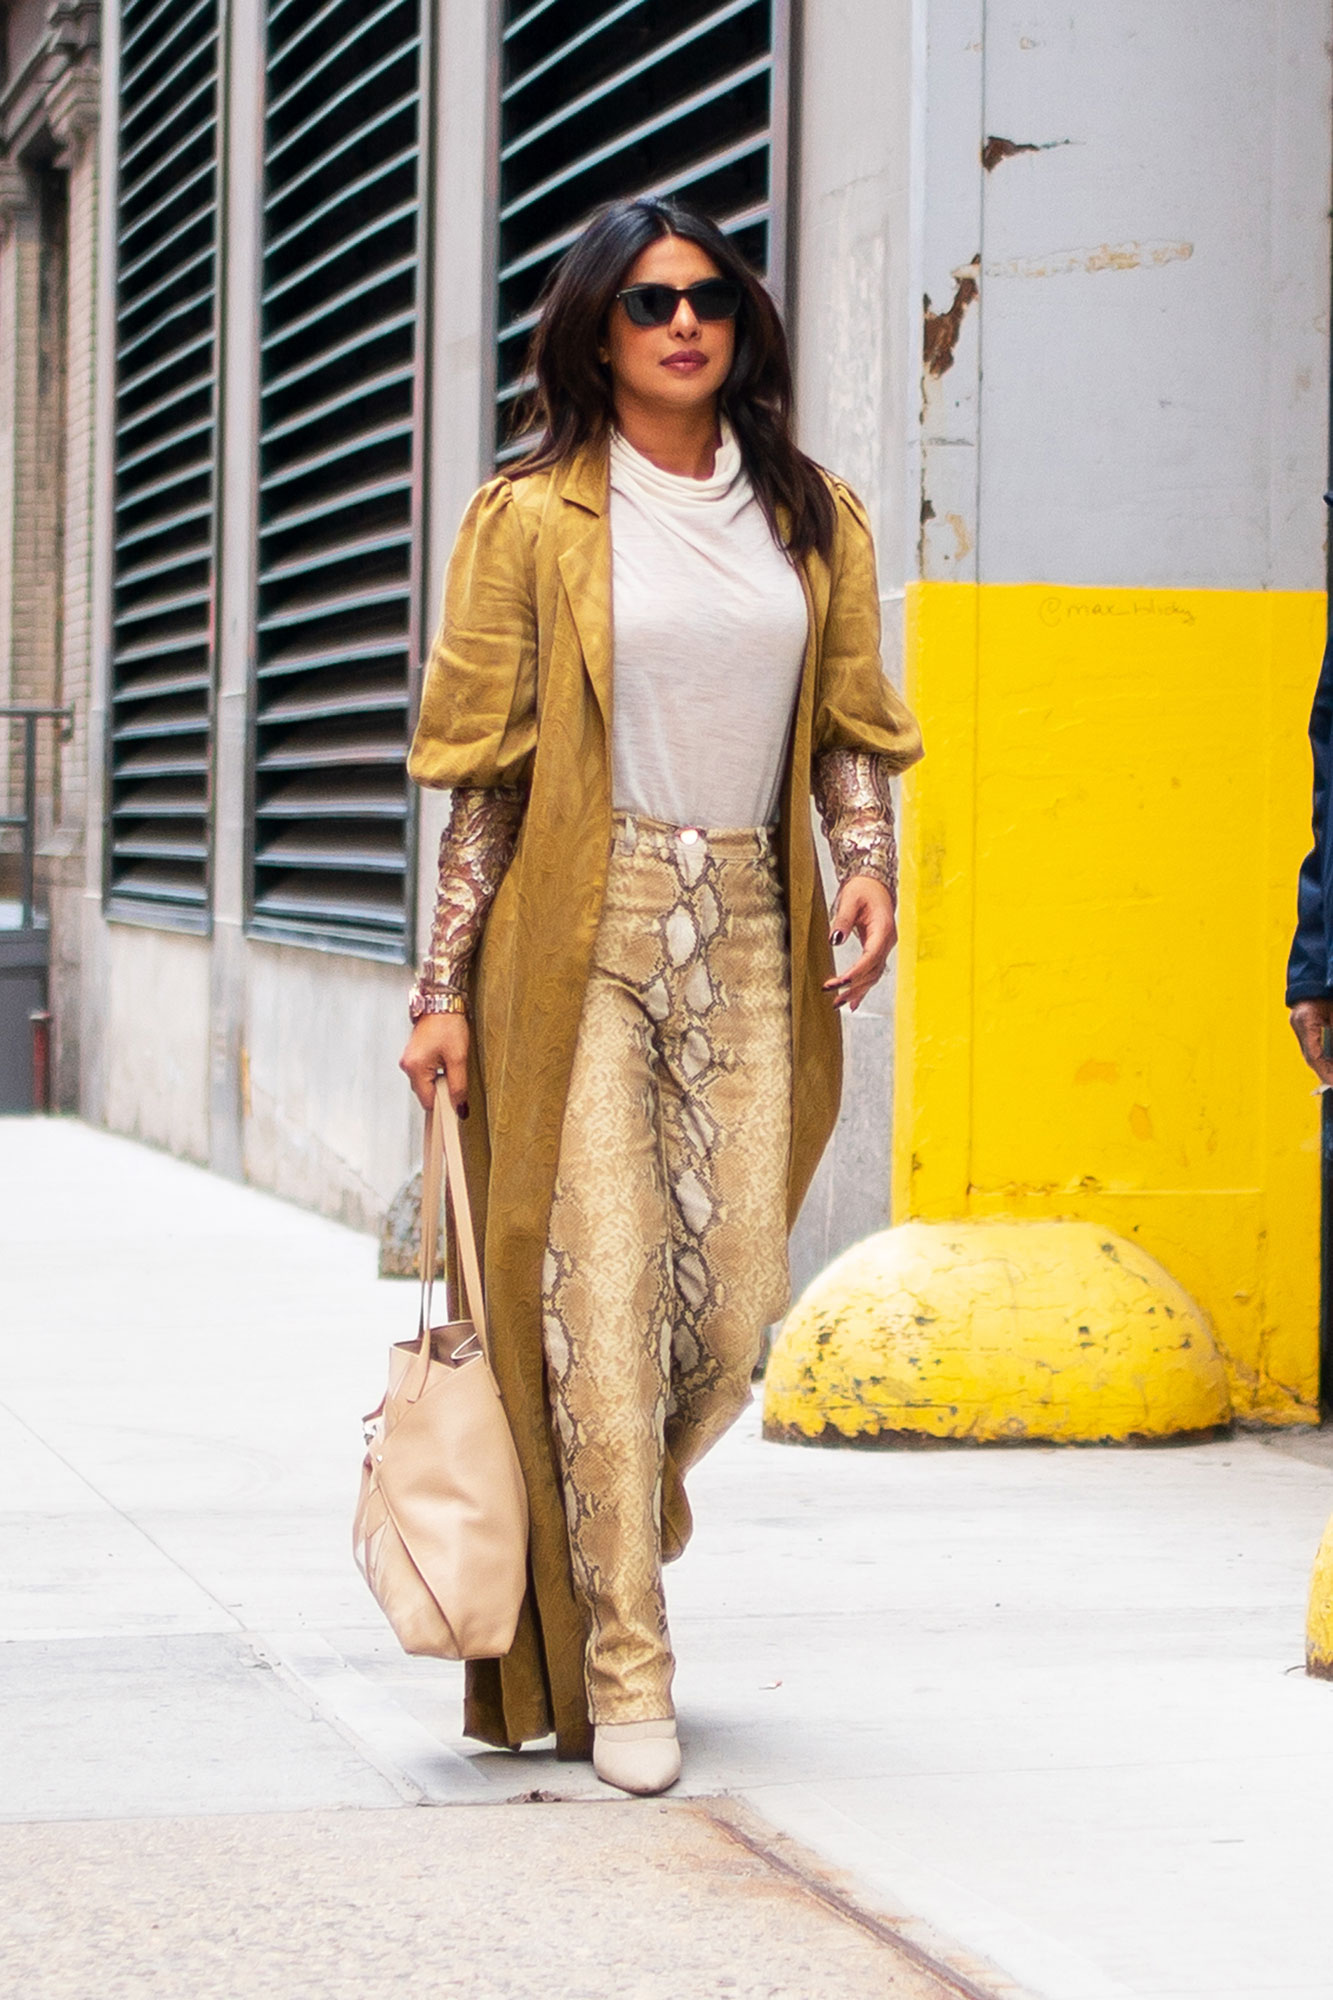 Priyanka Chopra snakeskin pants soho new york city - It was all about the monochrome for Chropa Jonas on her way to The View in Domallo python pants, a Madiyah Al Sharqi duster, Akris bag and Tony Bianco booties.